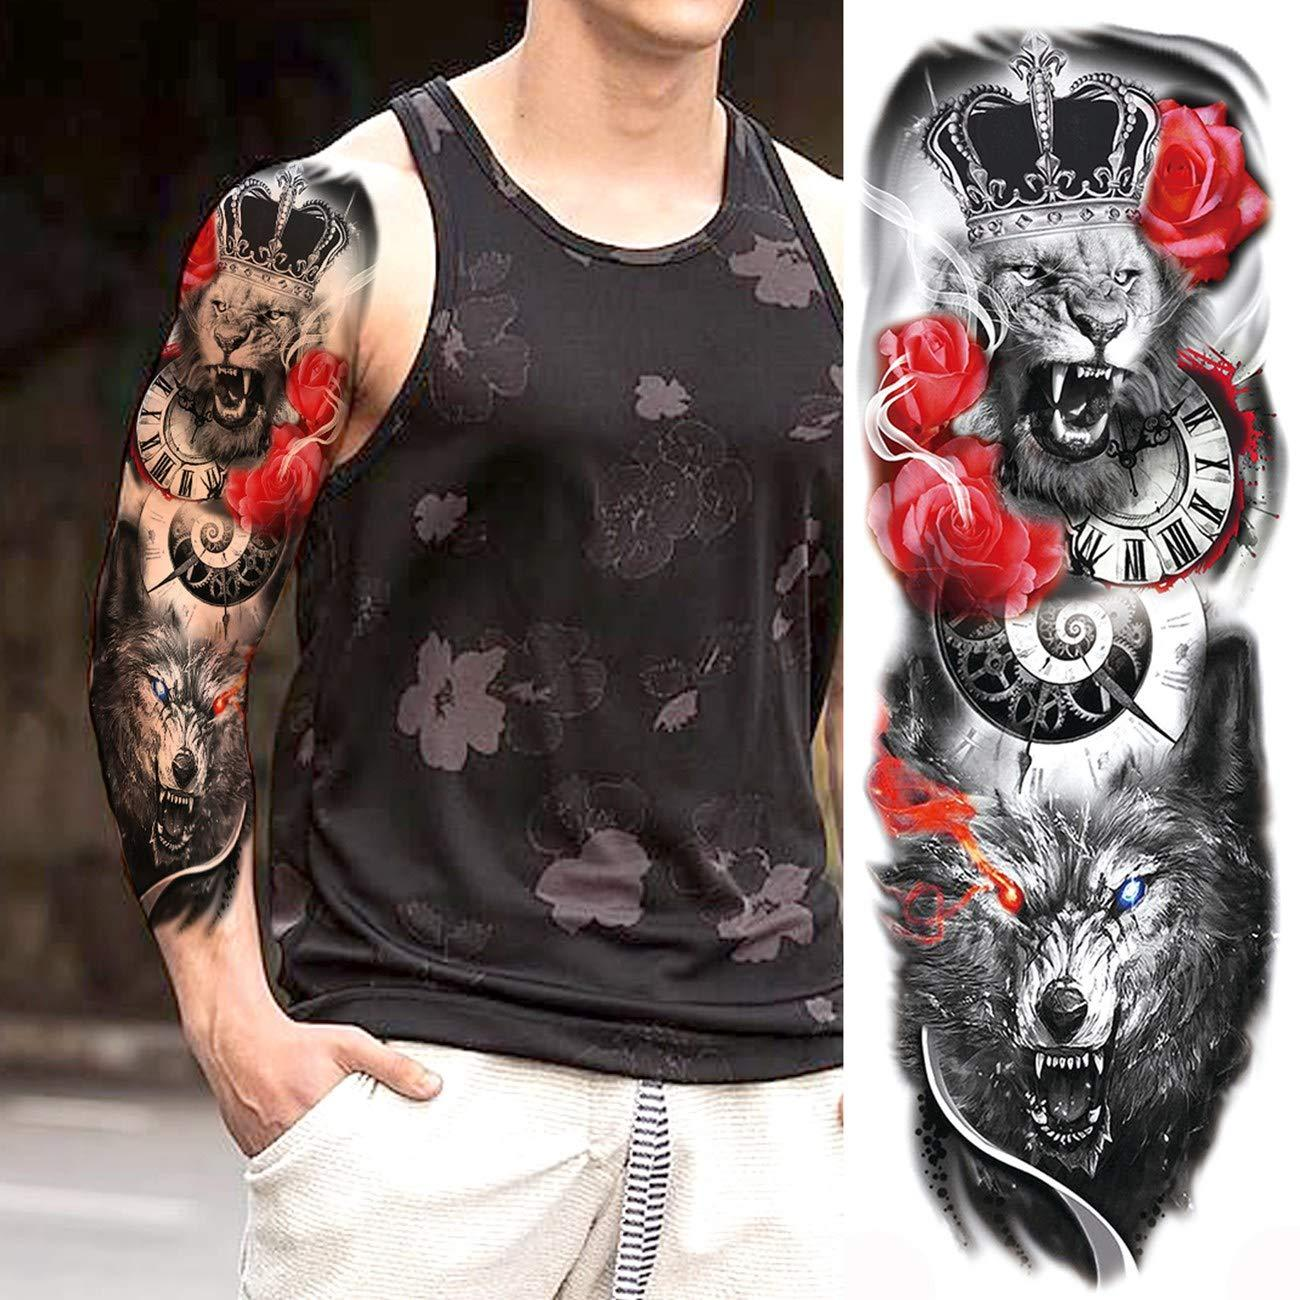 Flowers Tattoo Transferable Fake 3d Body Art Tatoos Neck Arms Sleeve Rose Temporary Tattoo Sticker Temporary Tattoo Ideas Temporary Tattoo Online From Zznysm2 0 61 Dhgate Com